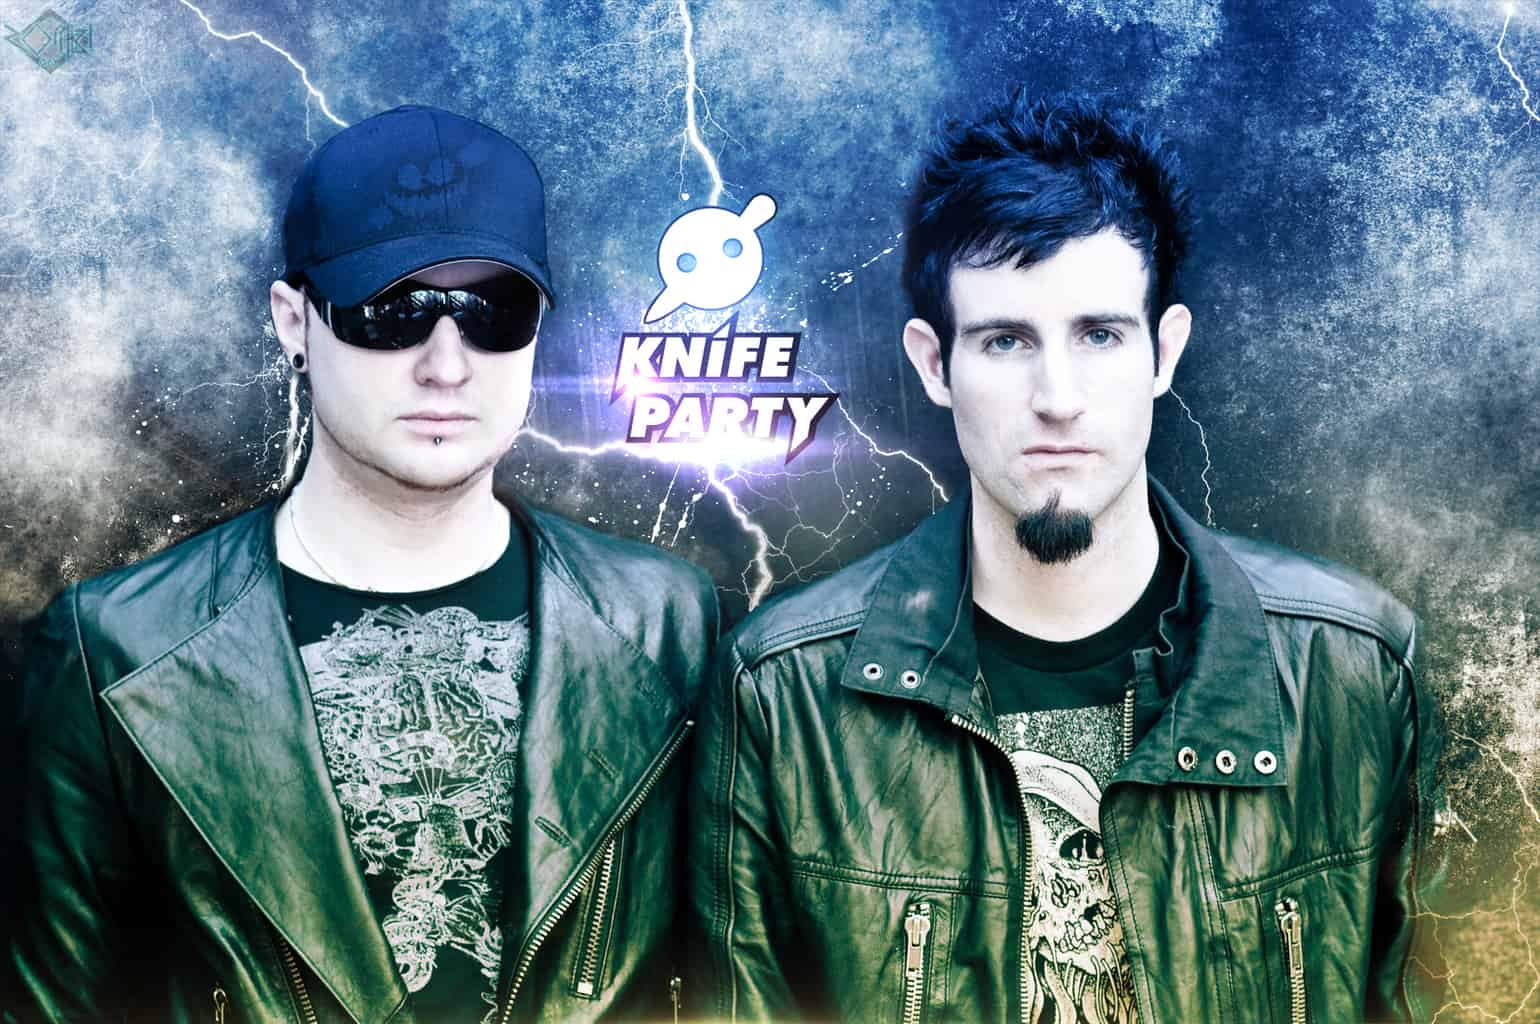 Knifepartywallpaperbyzombigfx d5stiem